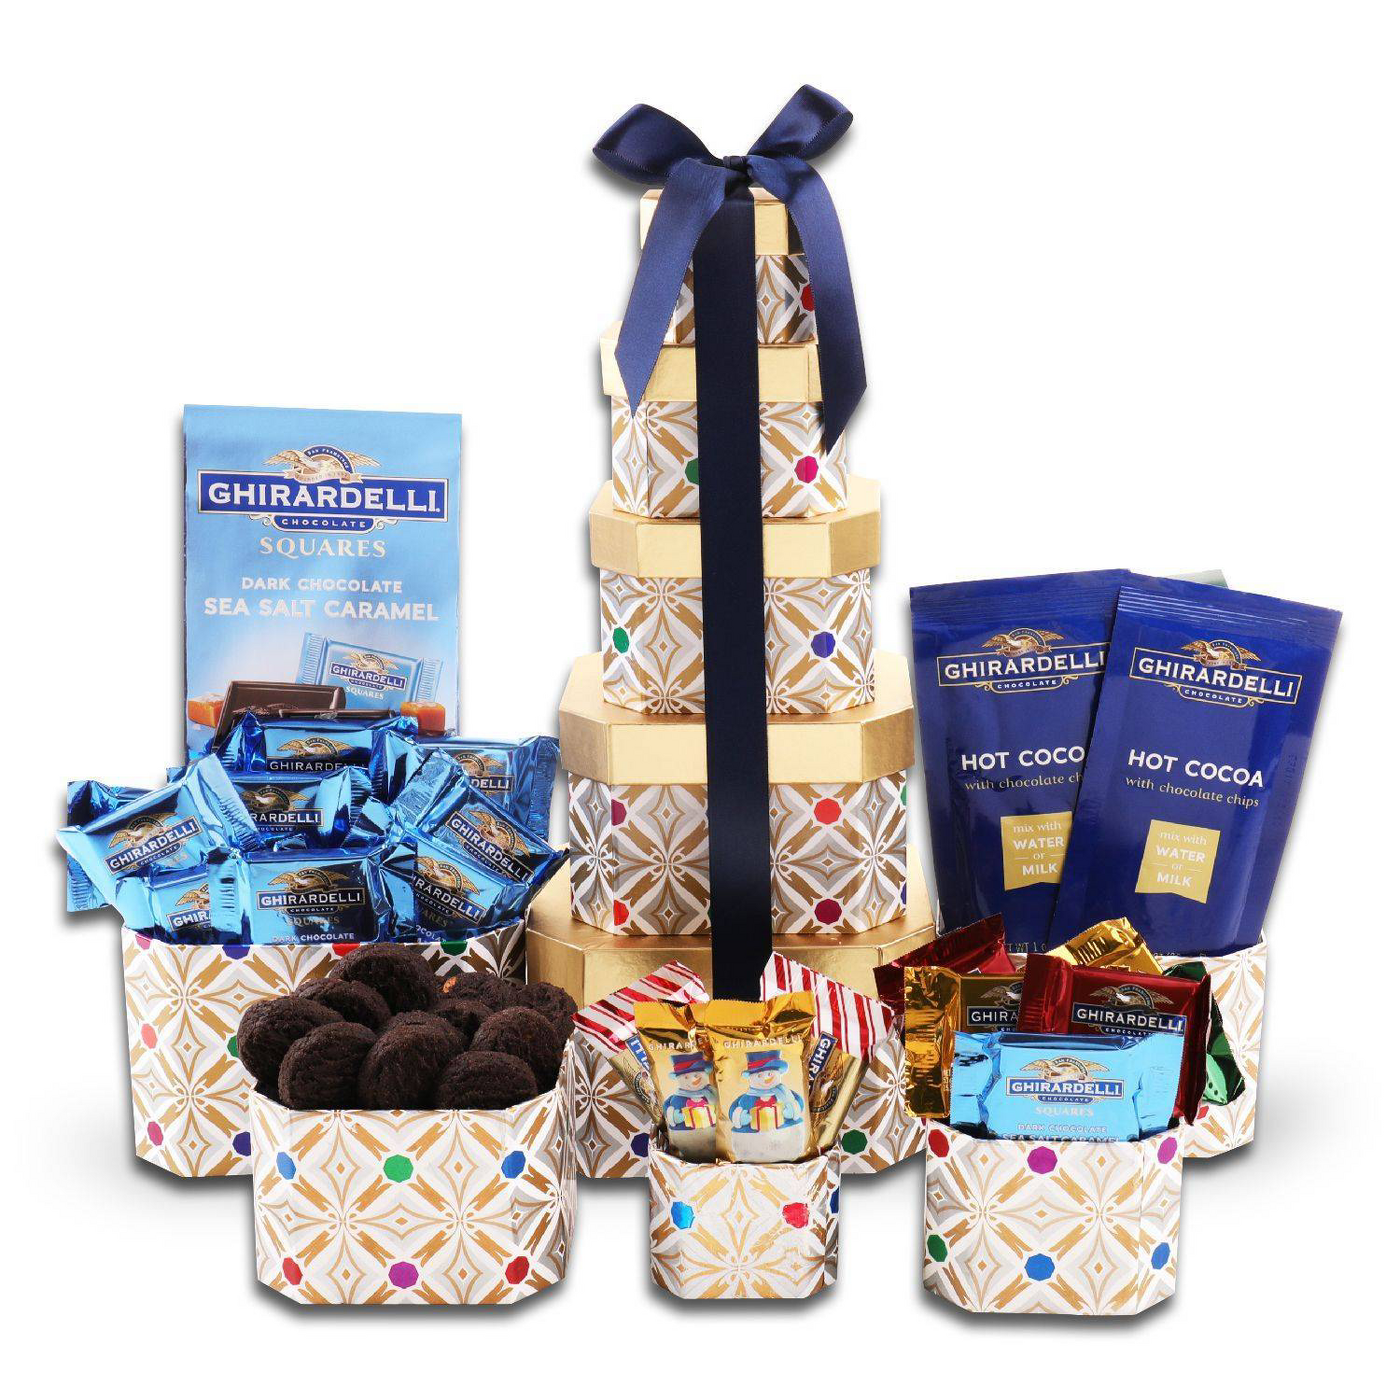 Set of chocolate gifts in various gift boxes